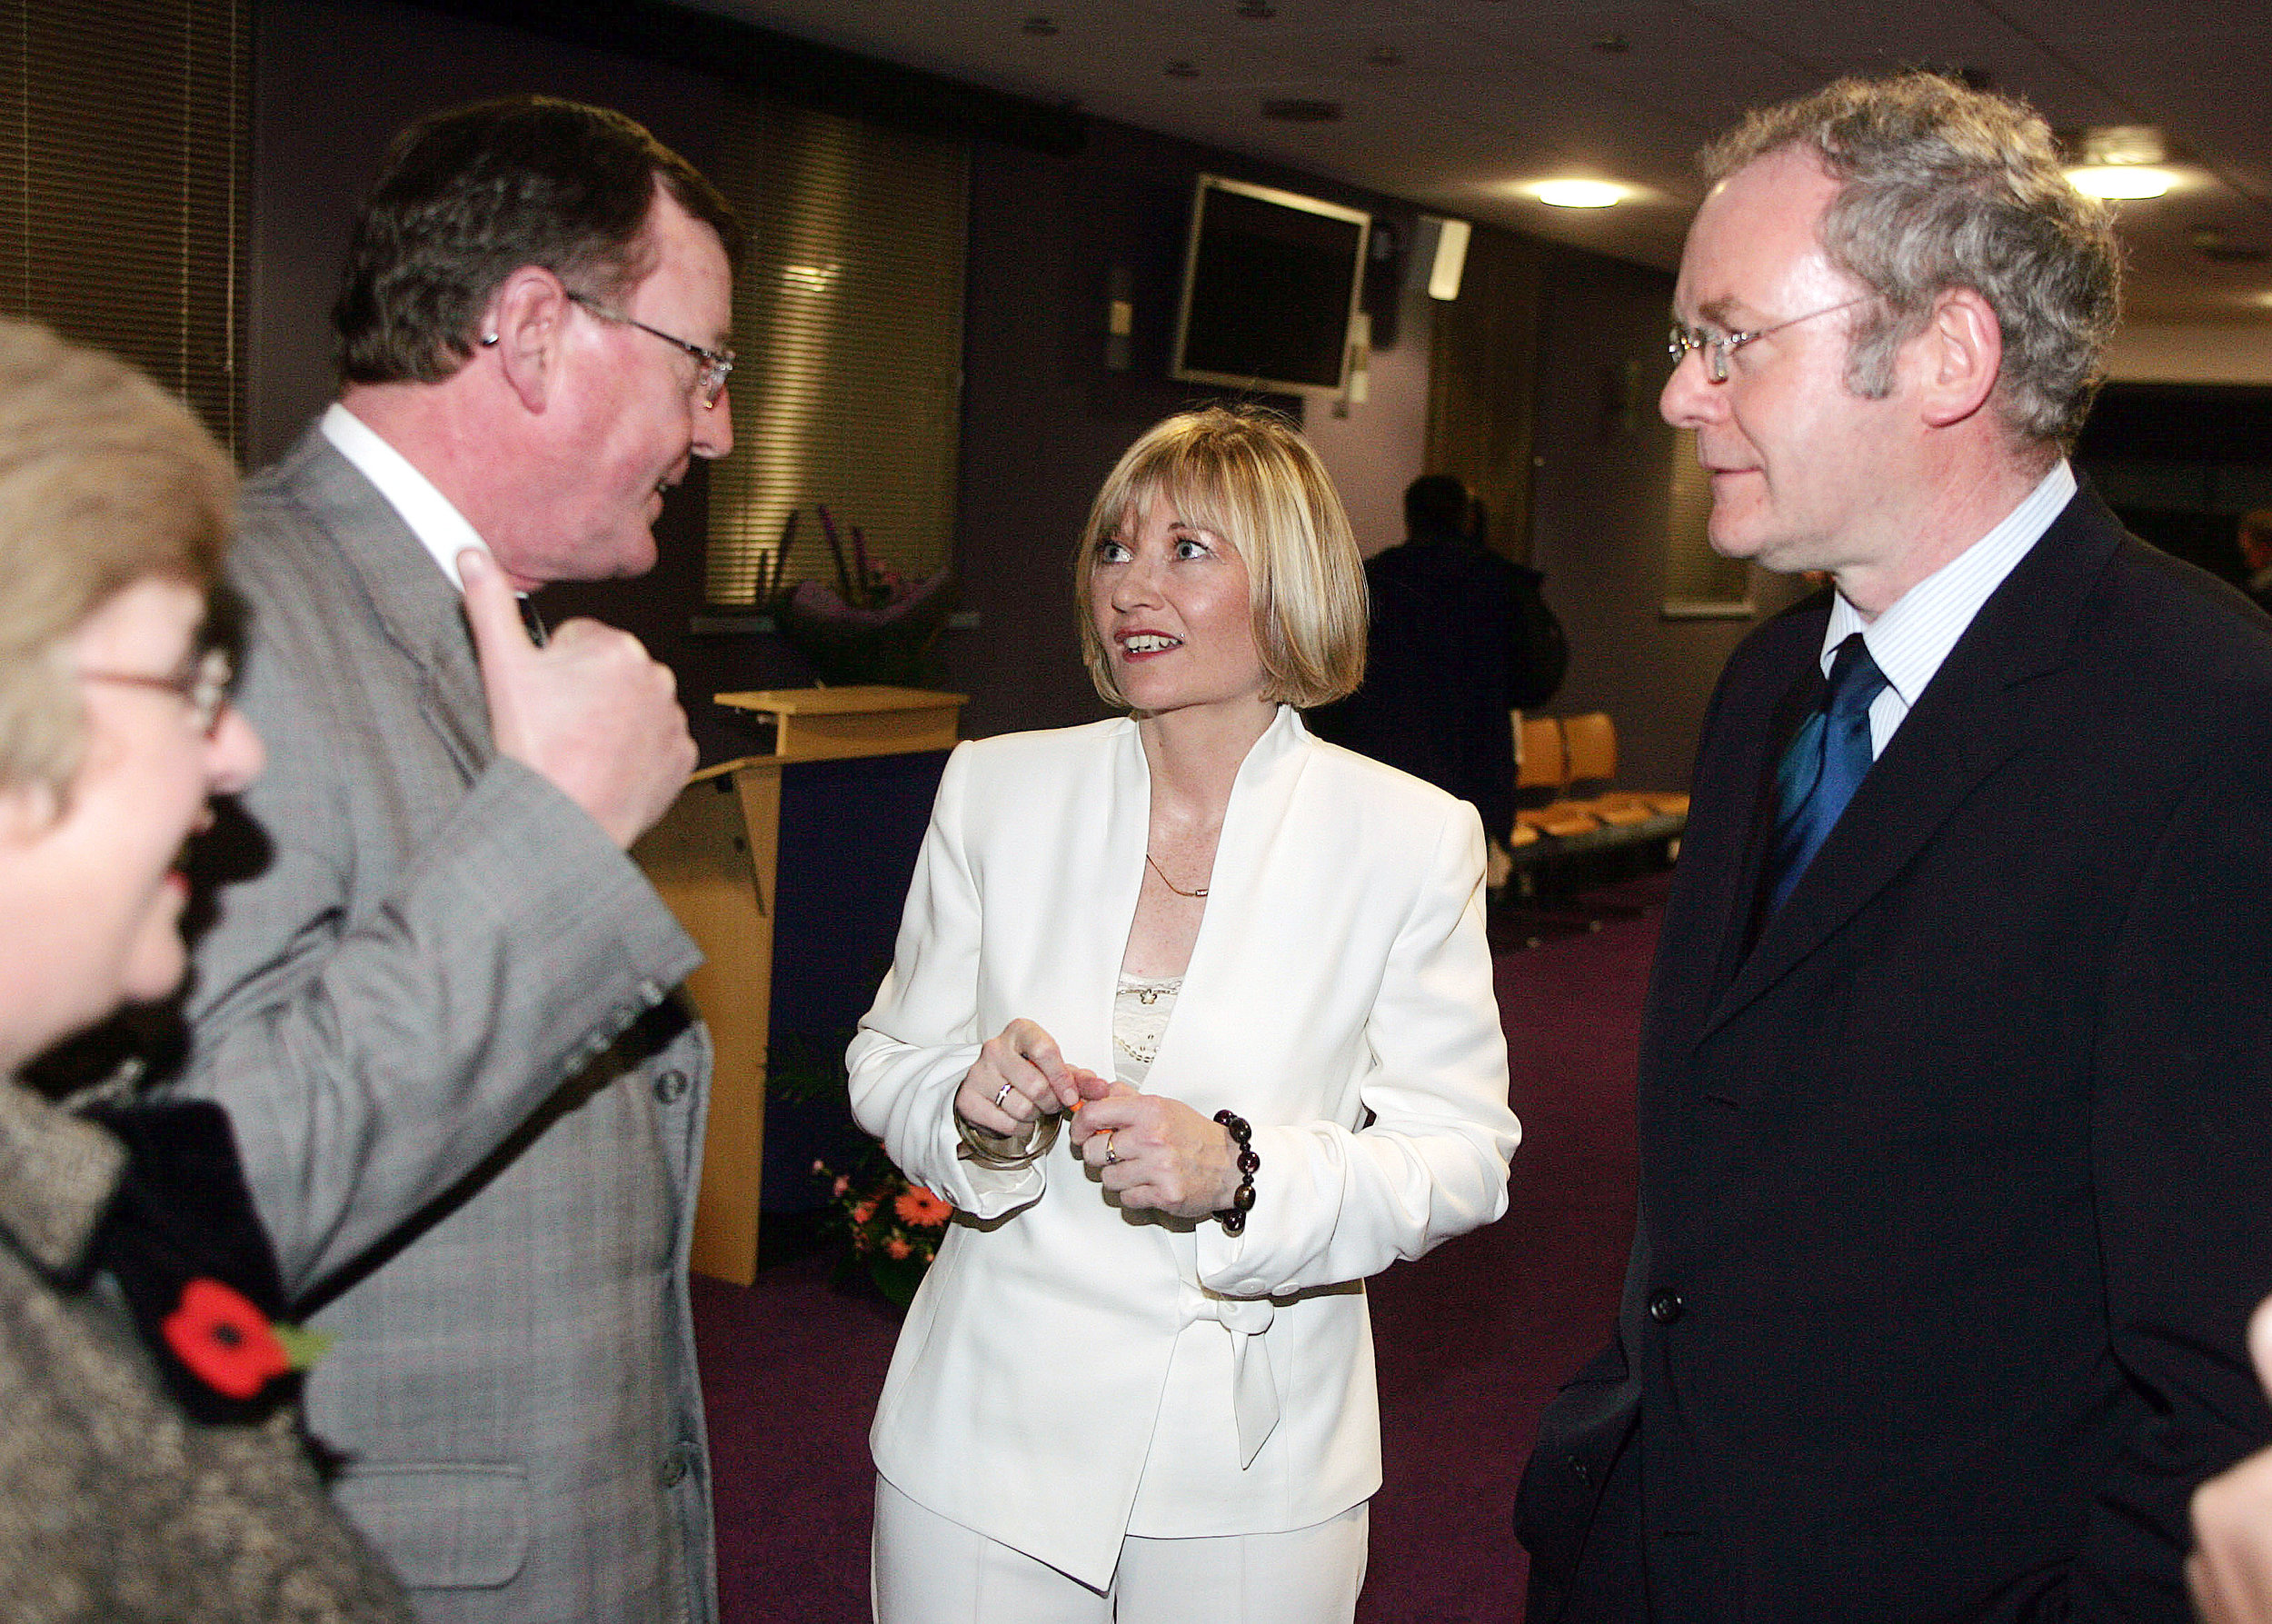 Martina in 2005 with politicians in Northern Ireland at her book launch